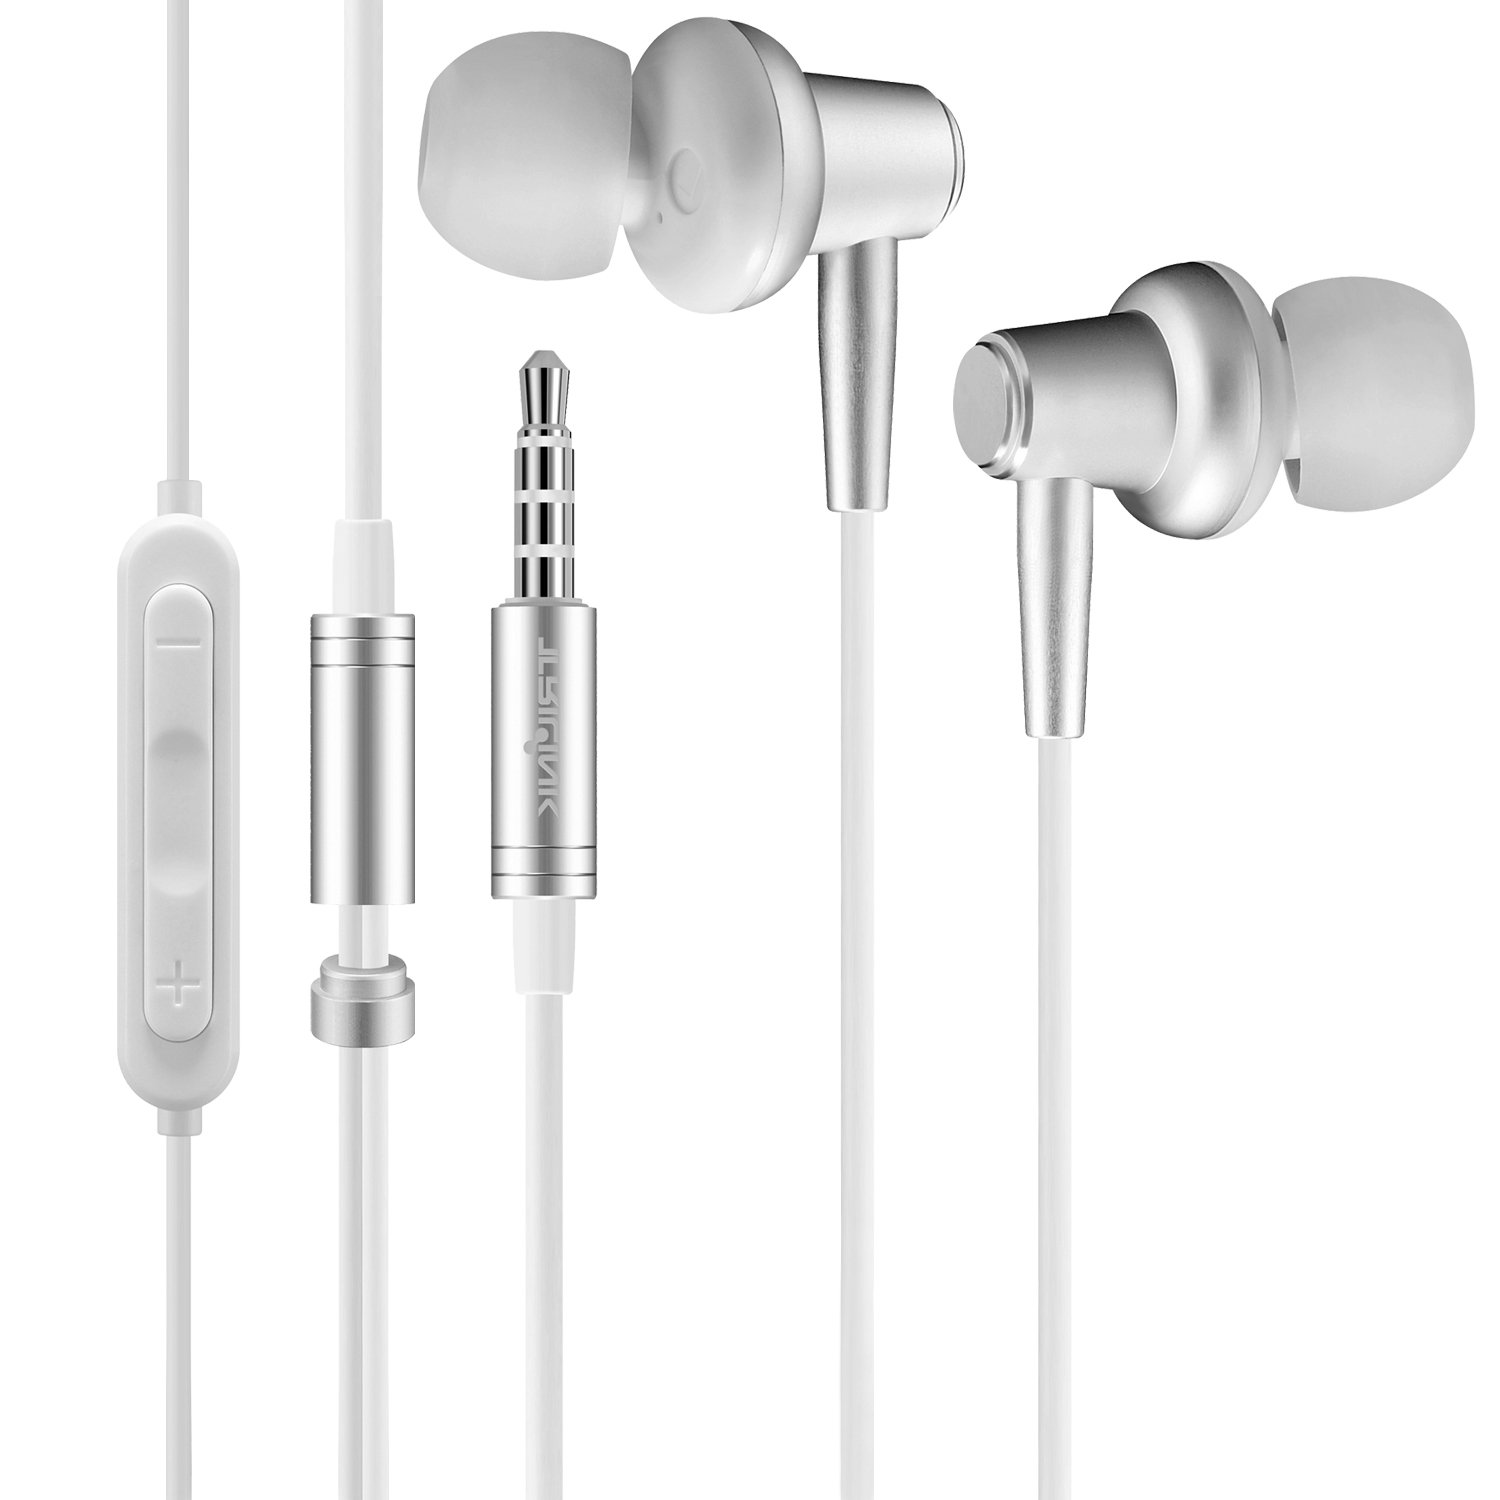 TriLink Metal Earbud Headphones, Wired In-Ear Noise Cancelling Earphones with Mic and Volume Control (White)